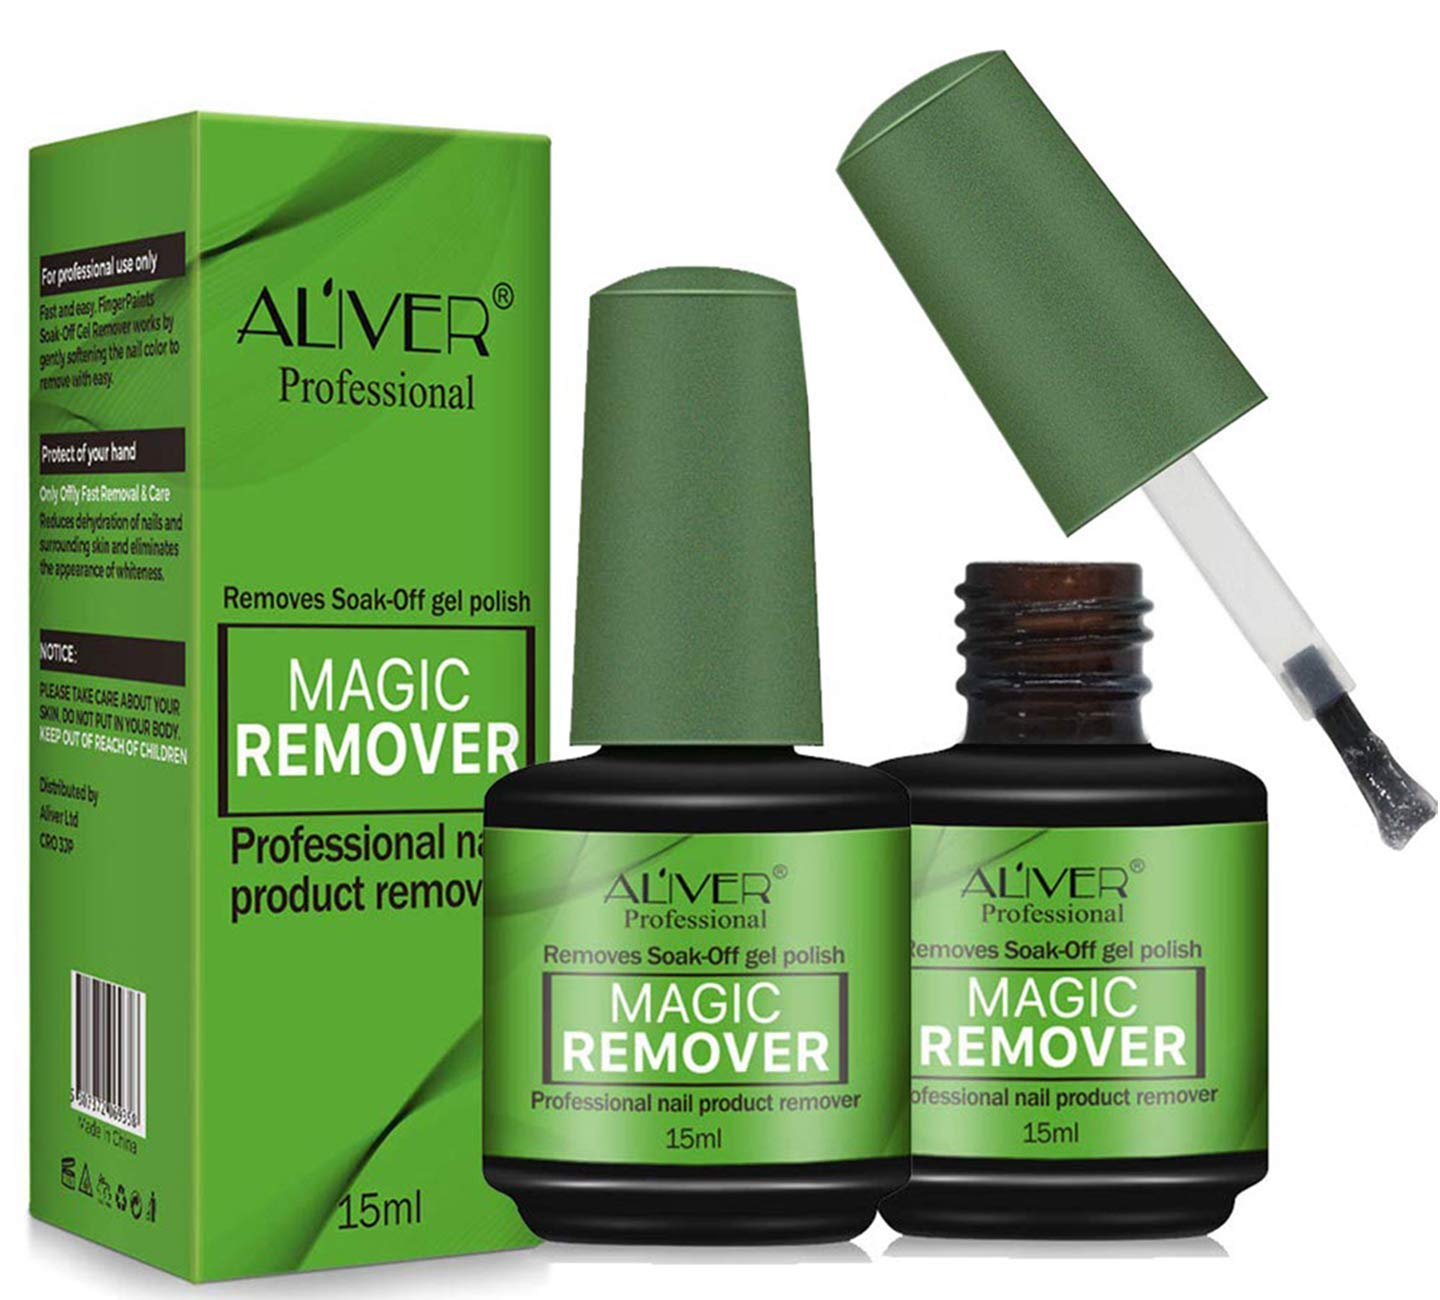 Magic Nail Polish Remover, Professional Removes Soak-Off Gel In 3-5 Minutes Quickly Easily Hurt Your Nails For Natural Gel Sculptured Nails Non-Irritating Nail Polish Remover - 2 Pack : Beauty